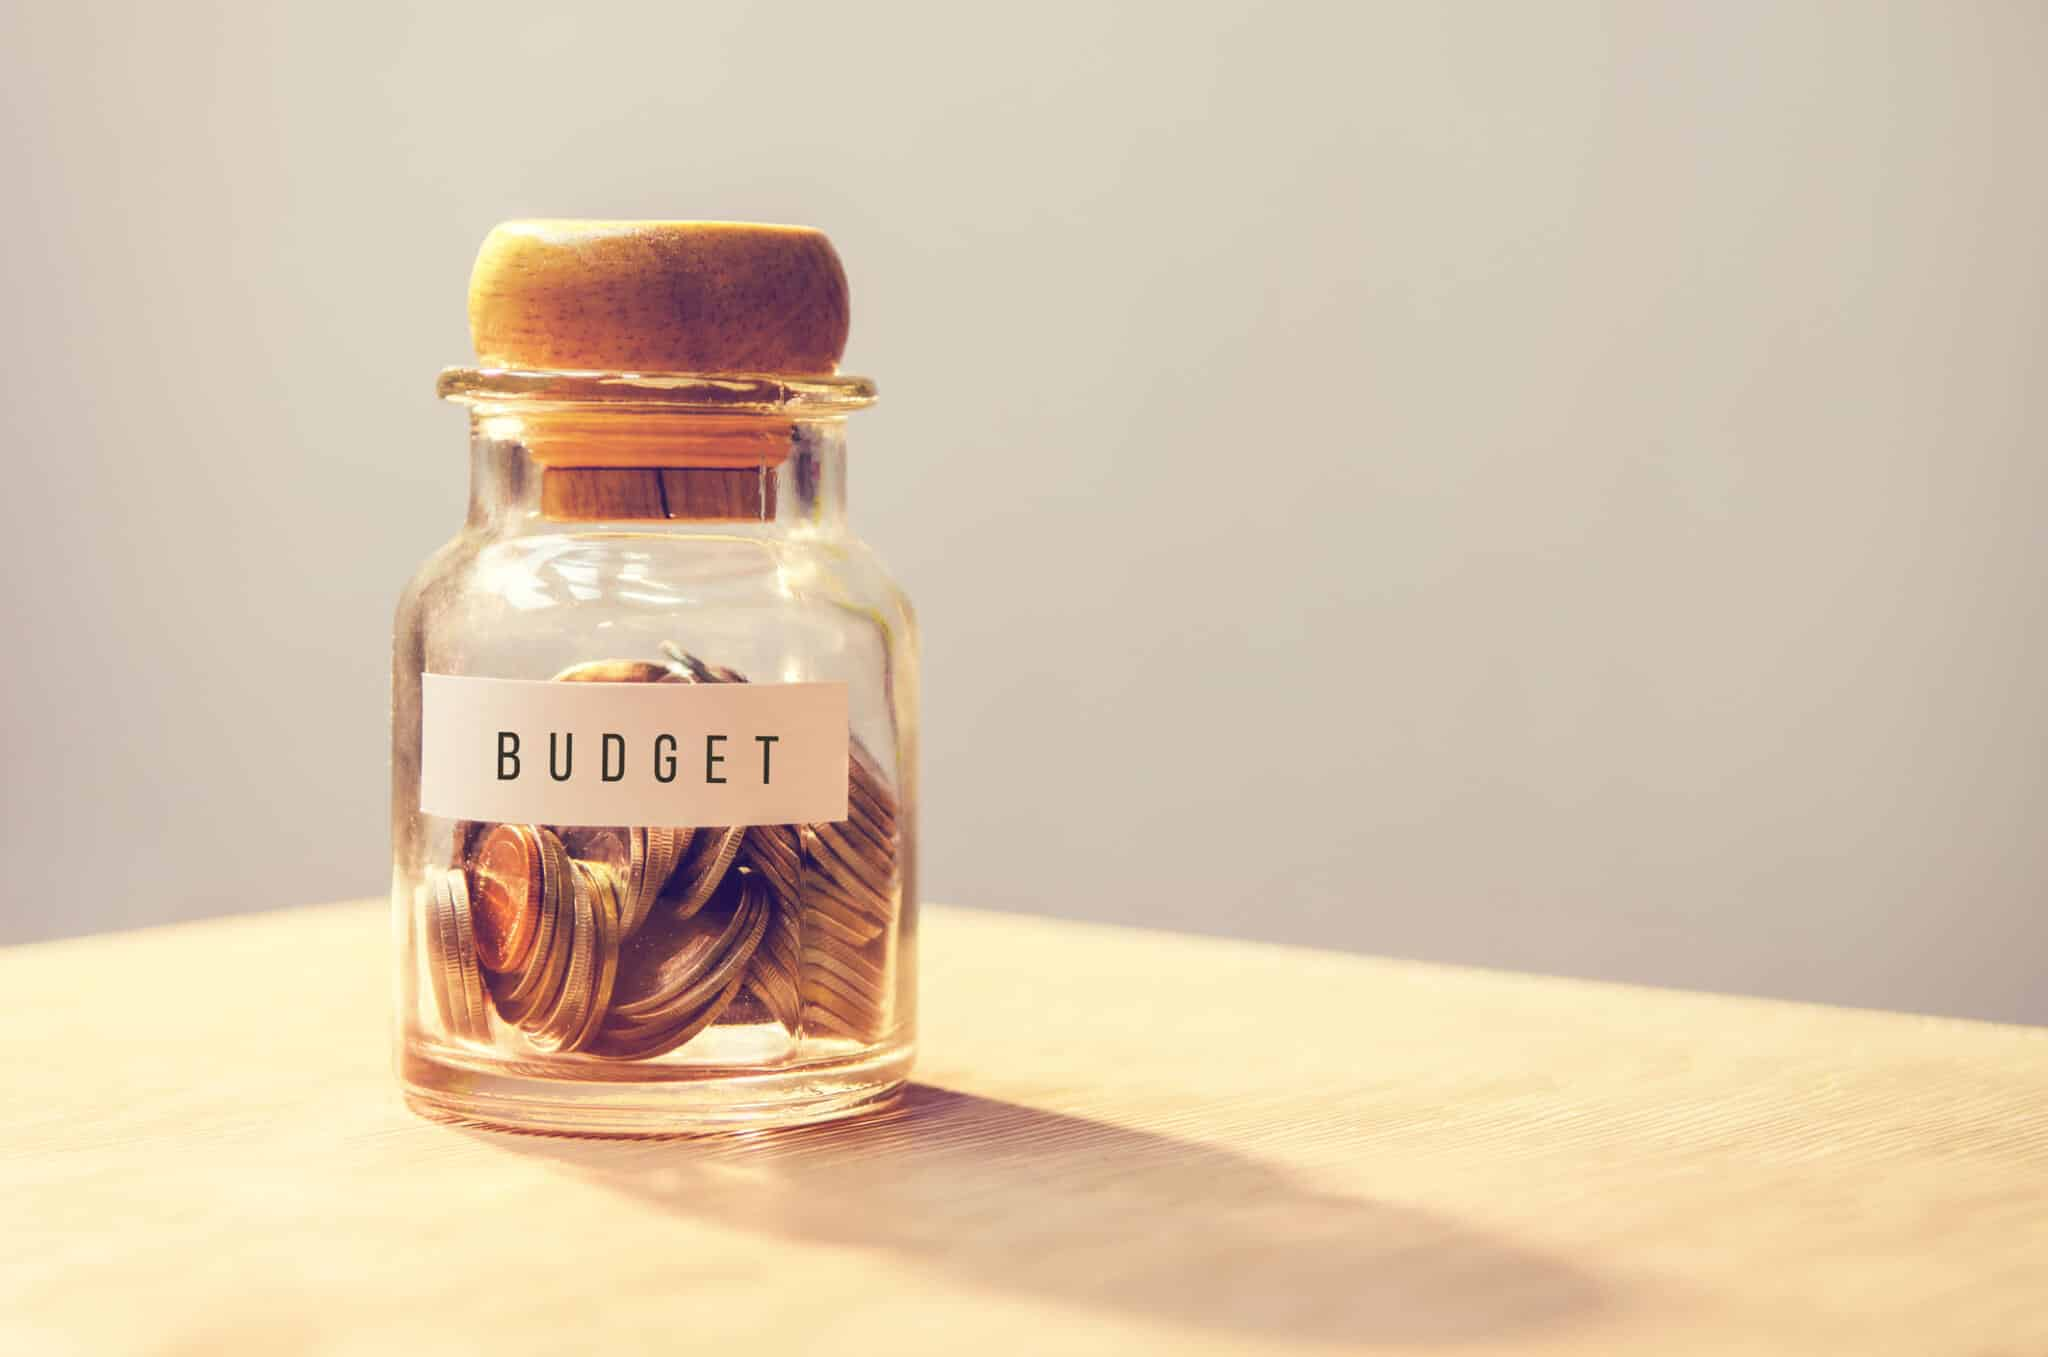 Welsh government publishes Draft Budget